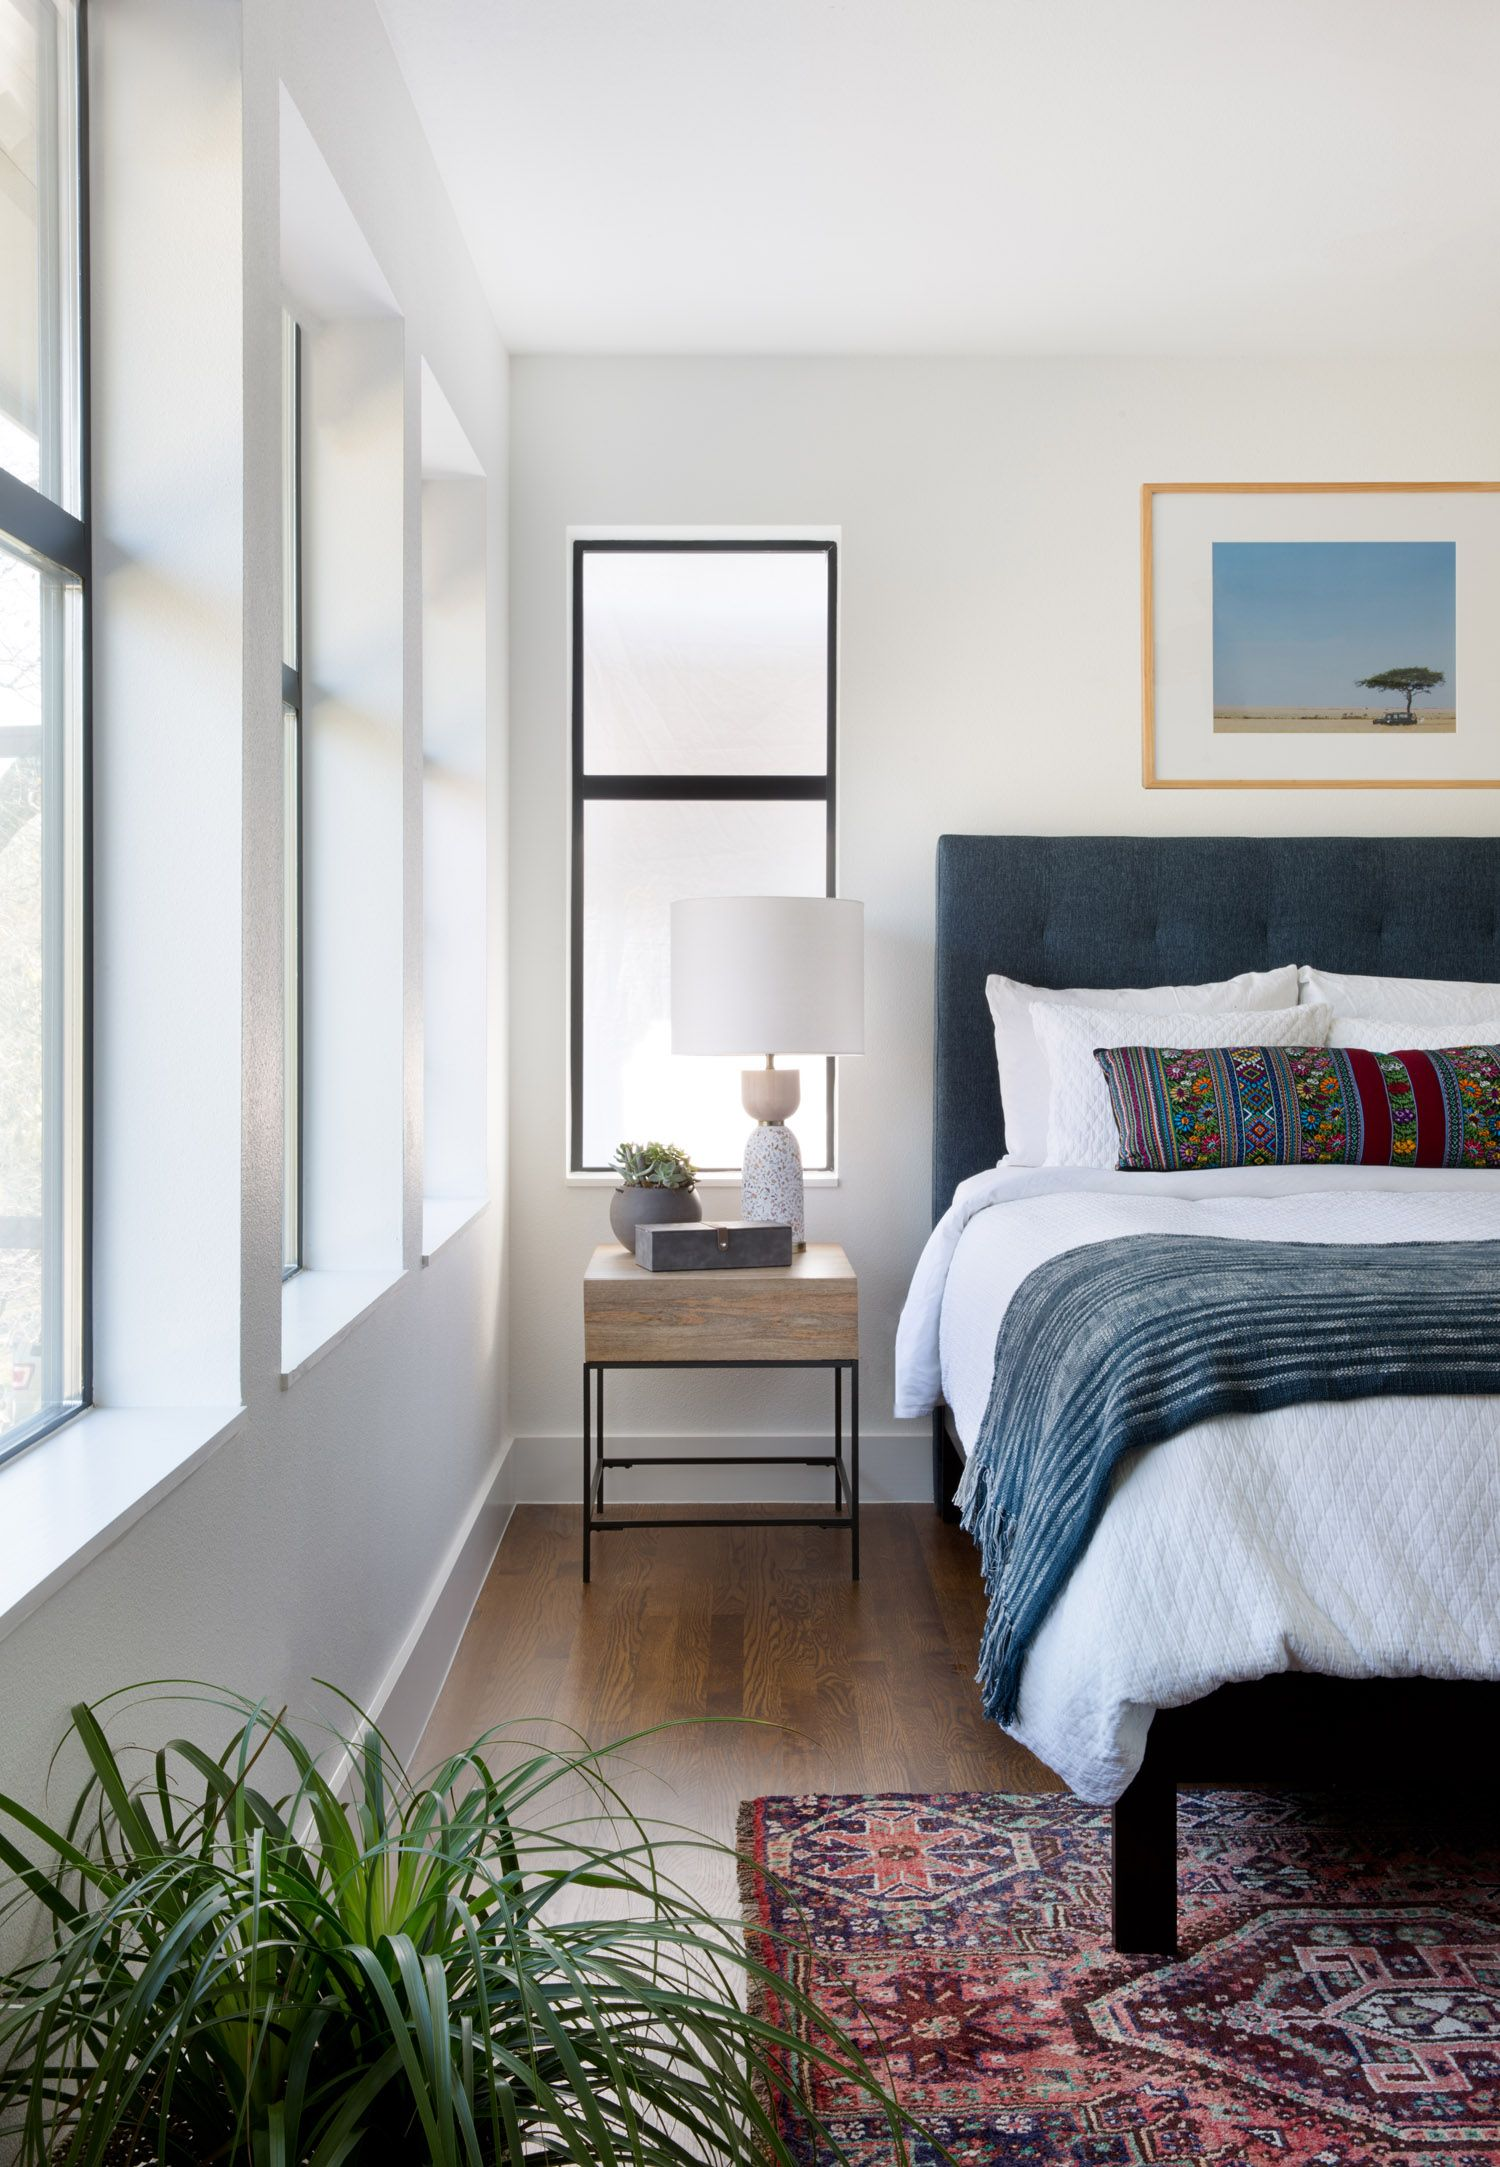 Main Bedroom Decor Pictures: Blending Styles In This Mid-Century Remodel